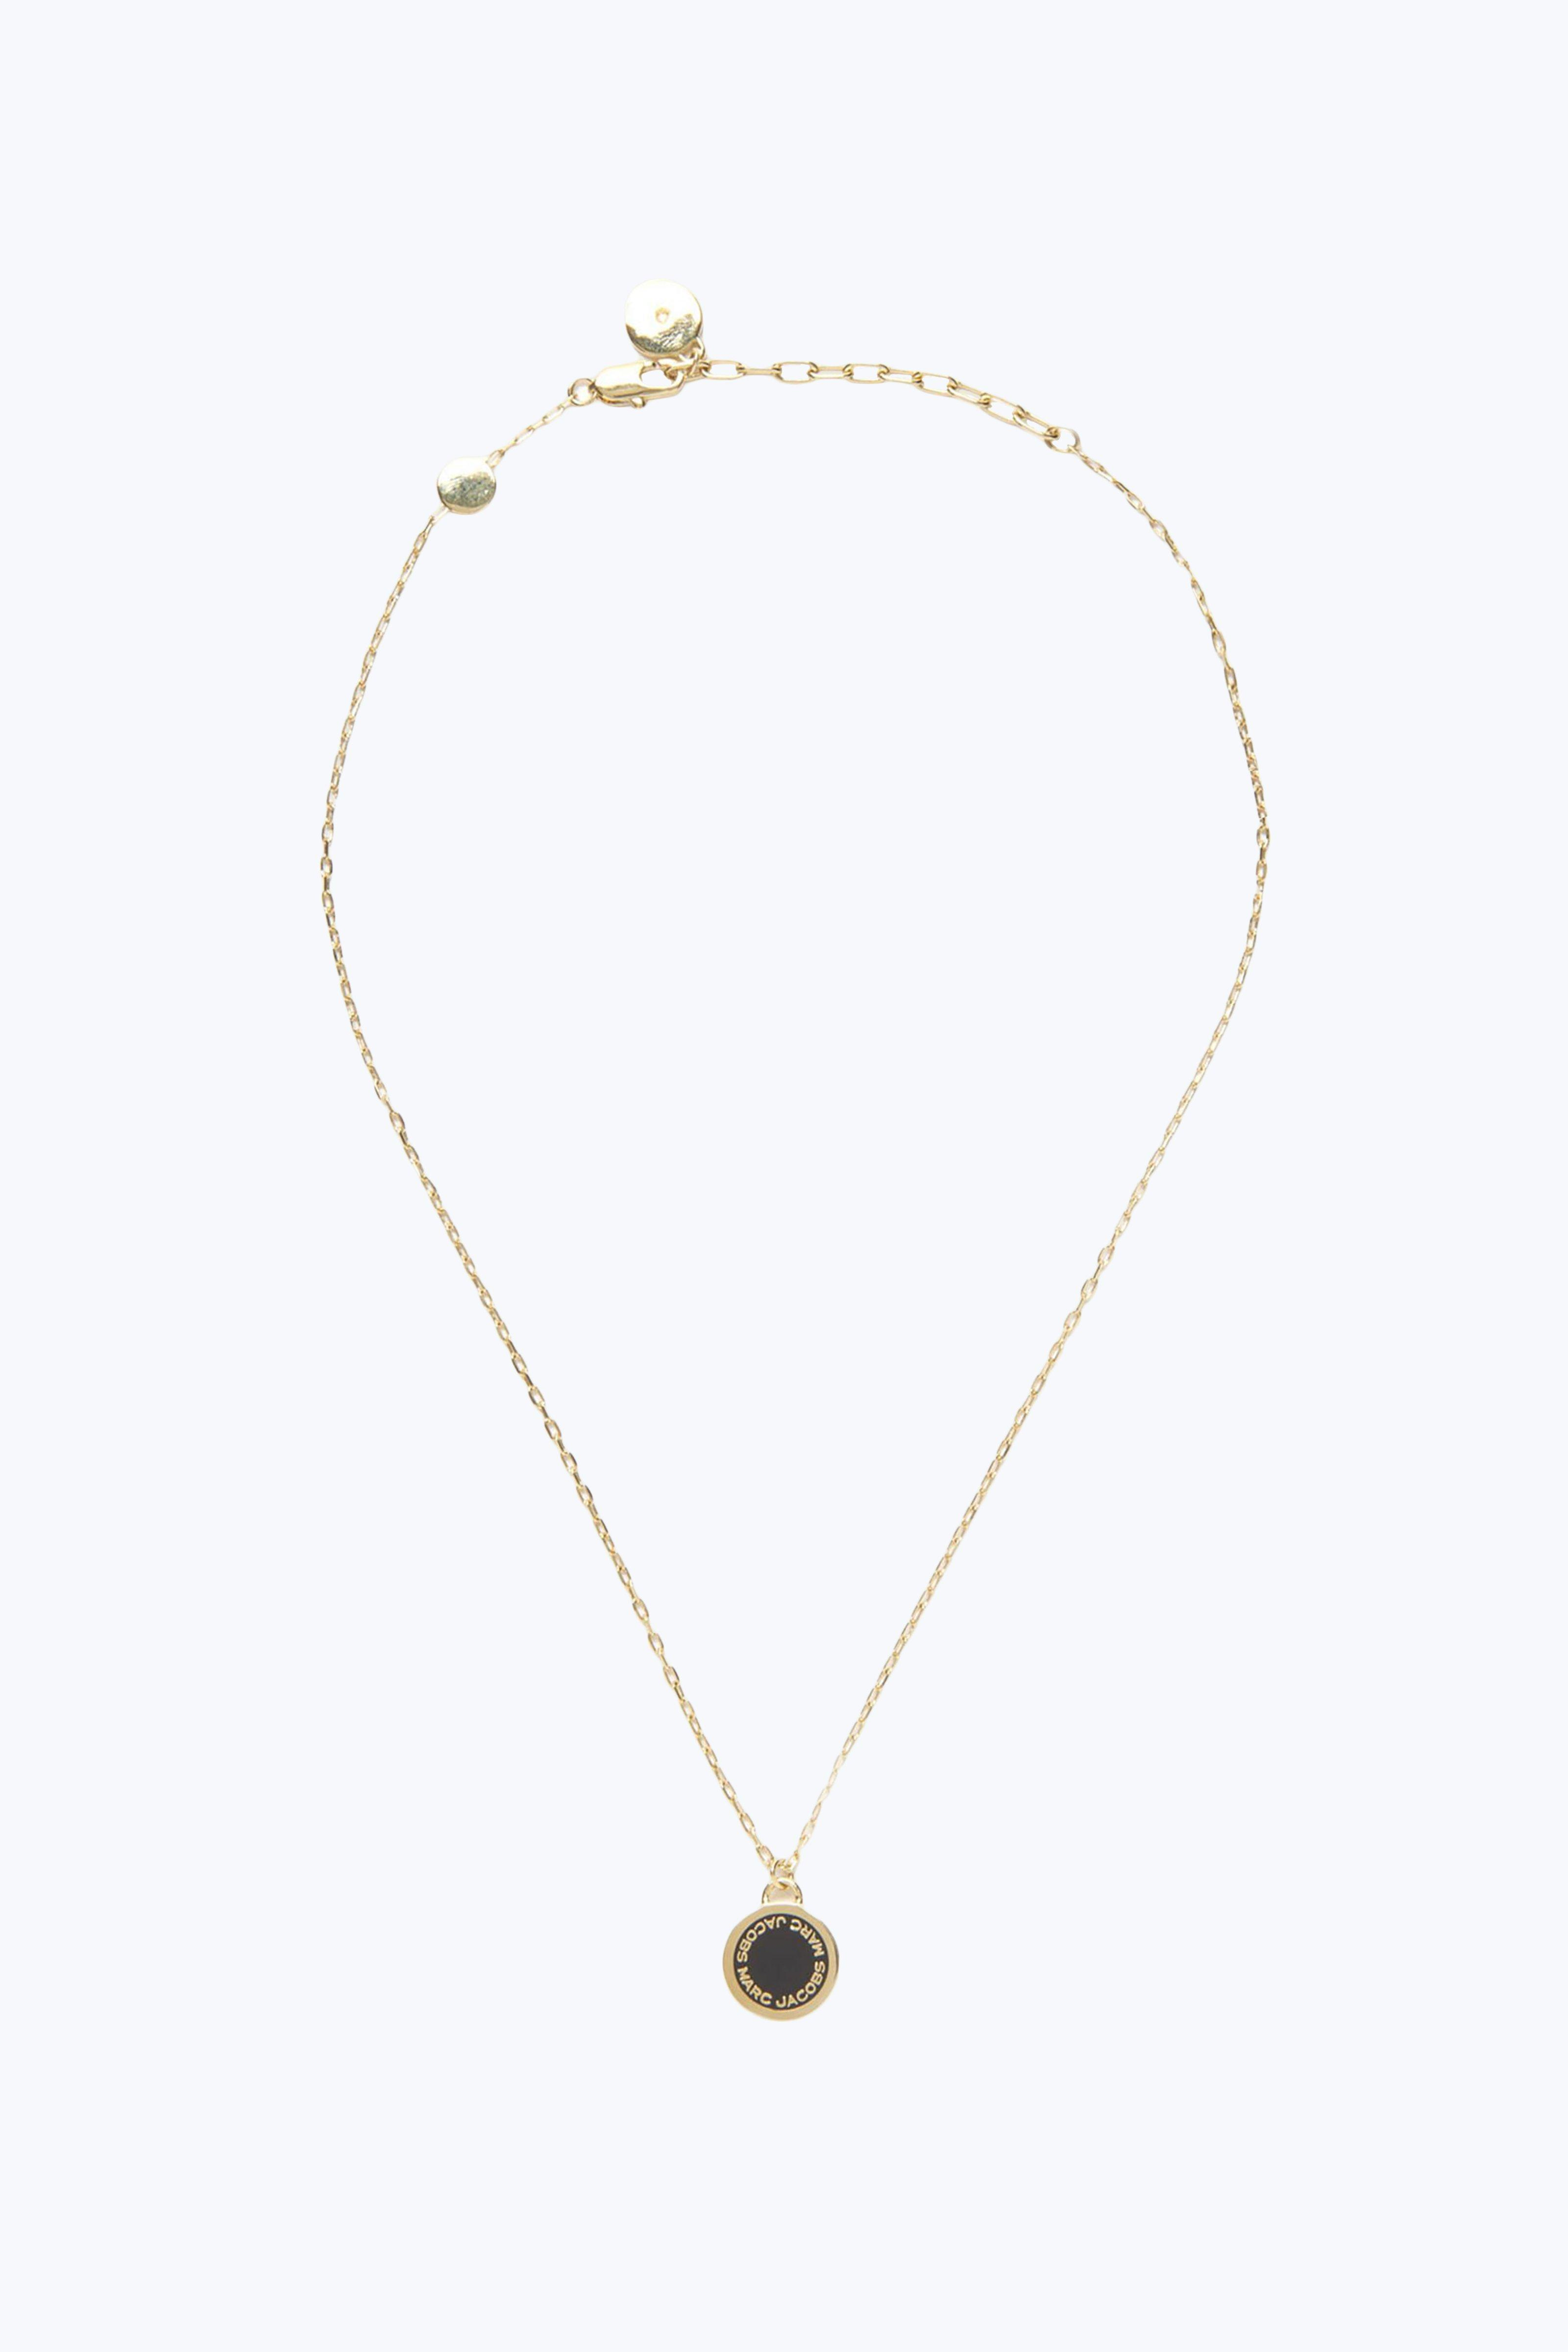 Marc Jacobs Logo Disc Pendant Necklace In Cream Brass - Jewelry Us In Black/Oro